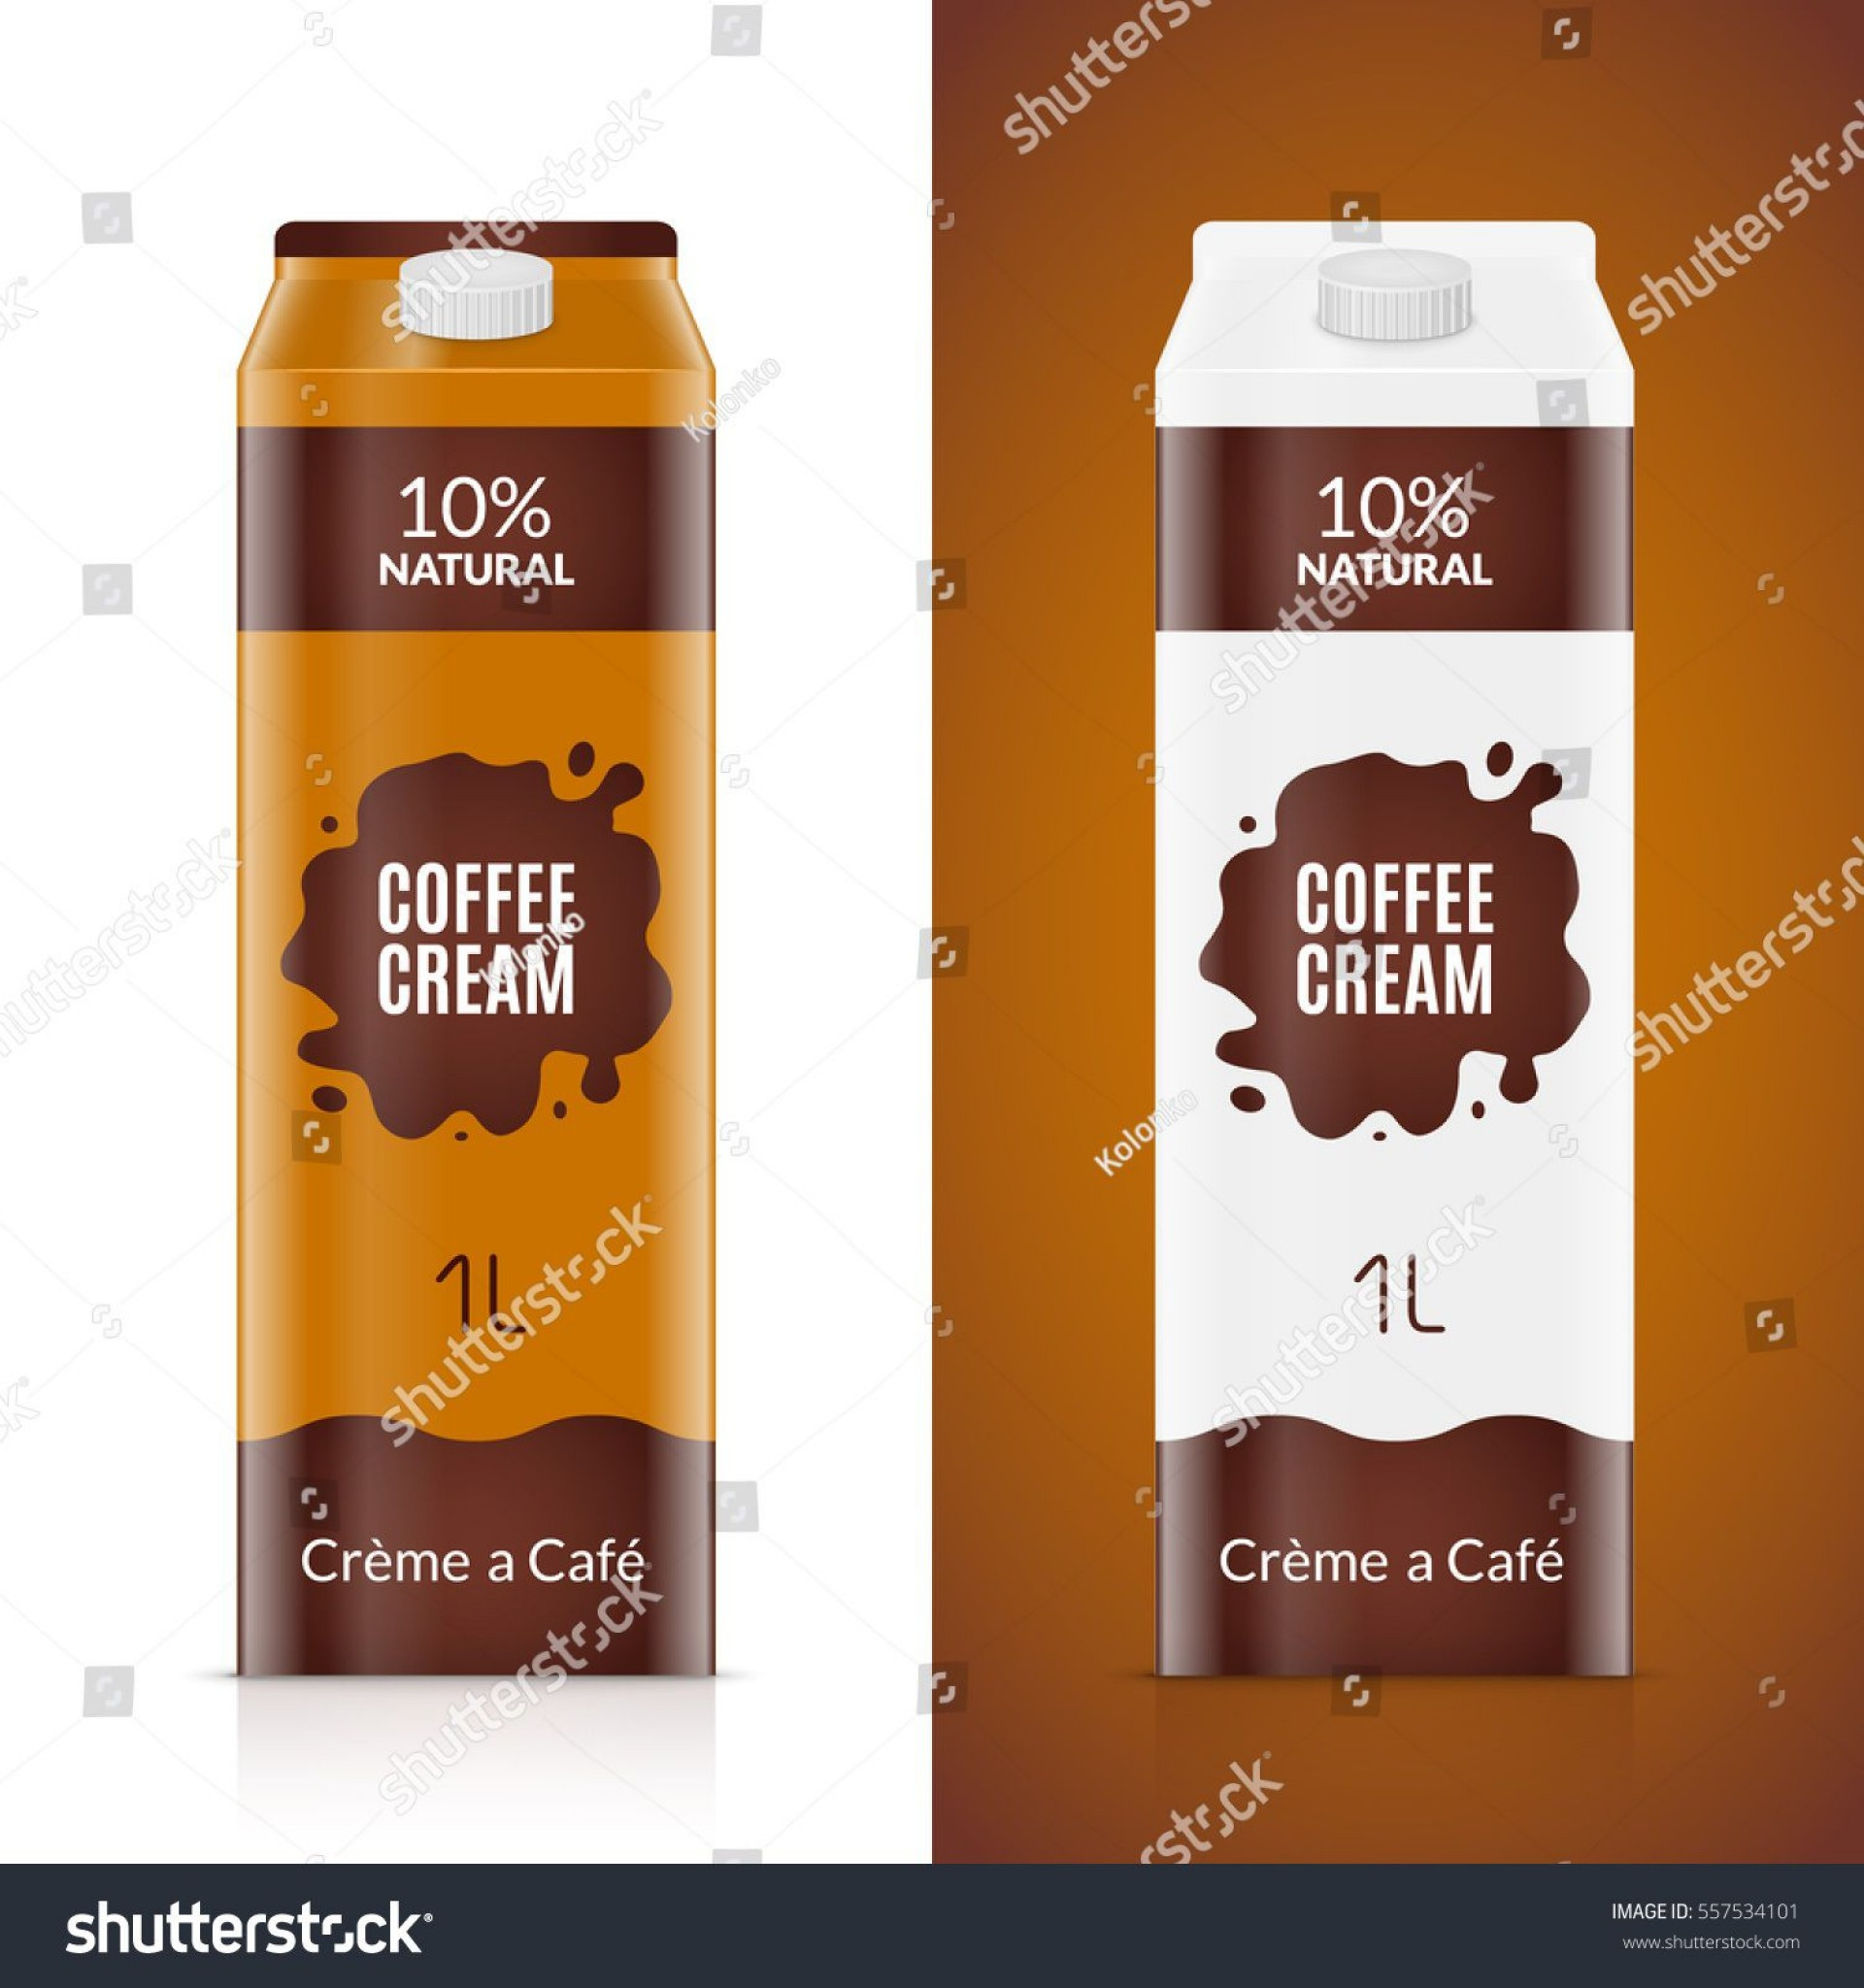 007 Stirring Product Packaging Design Template  Templates Free Download Sample1920